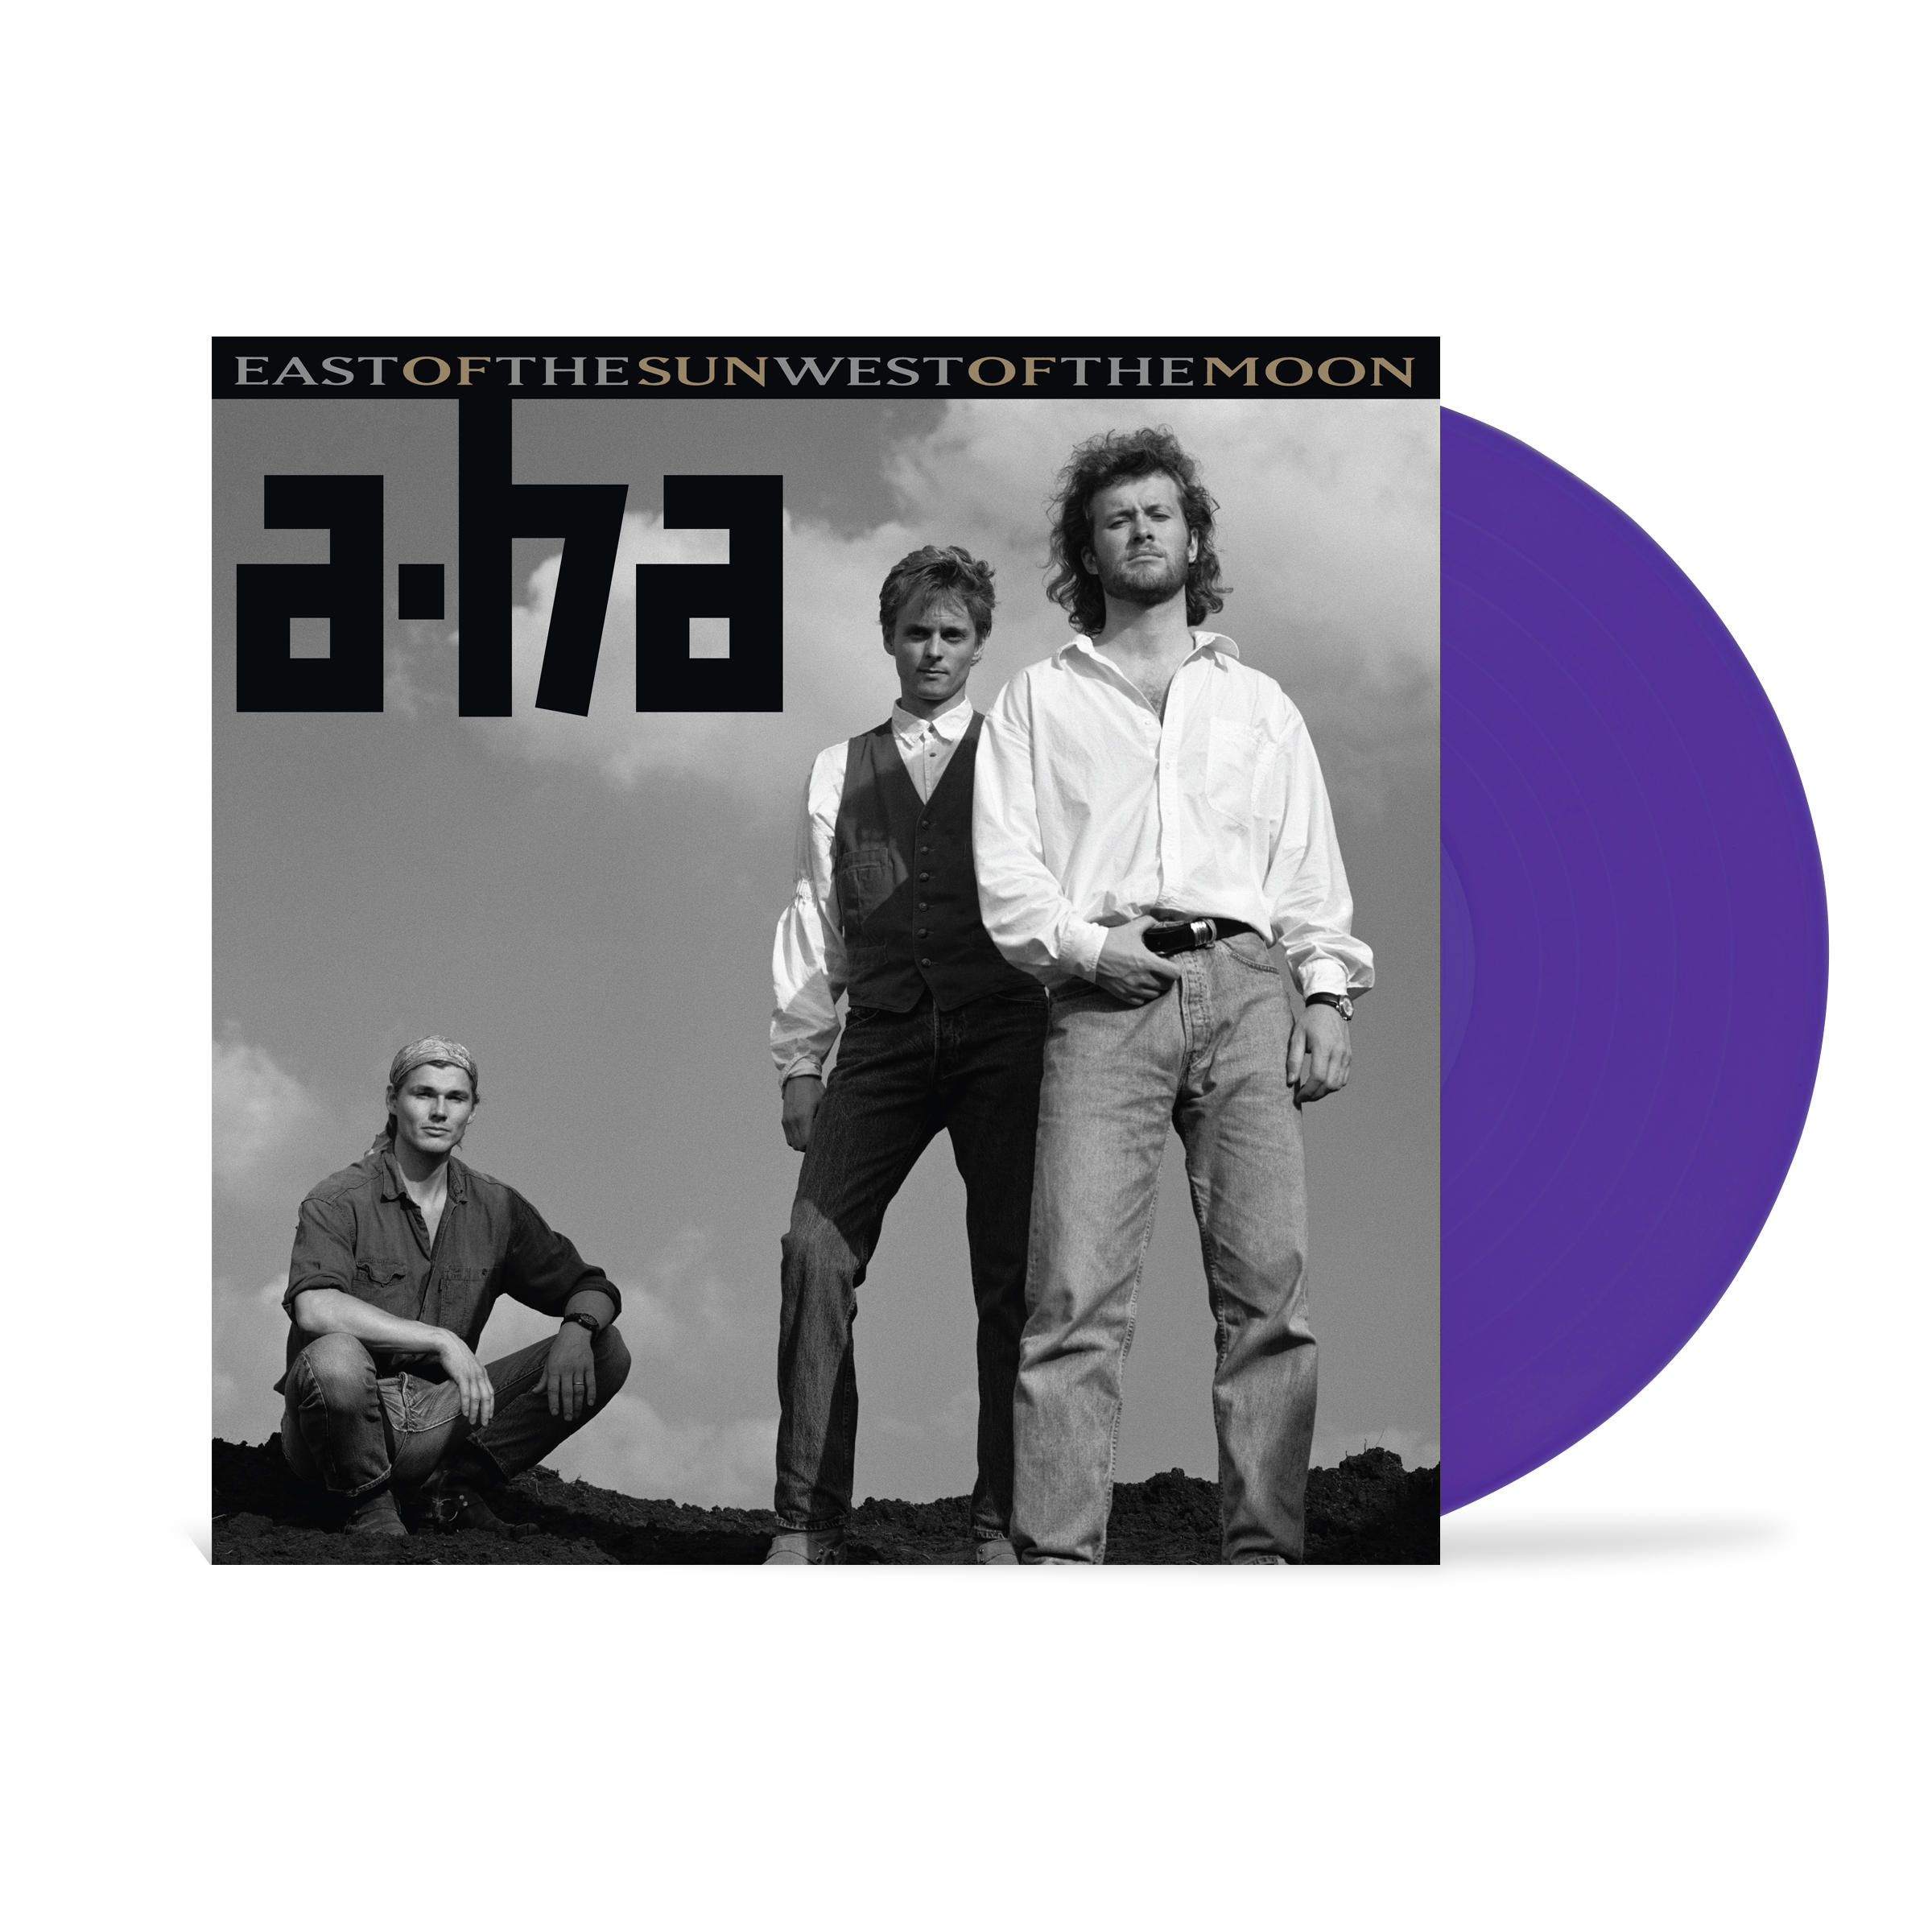 a-ha - East Of The Sun West of The Moon [LTD LP] (Purple vinyl)